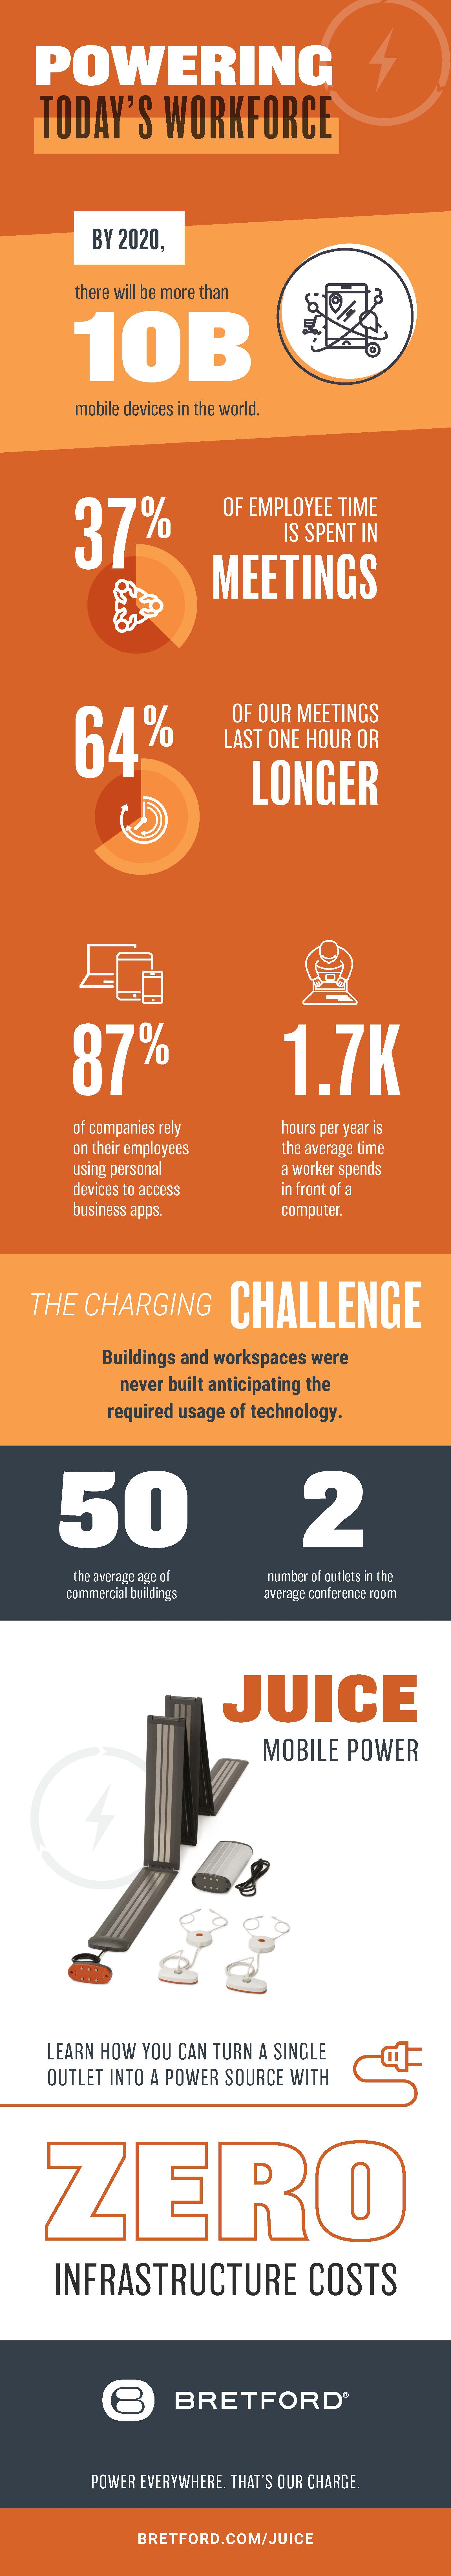 Bretford Infographic - Powering Today's Workforce